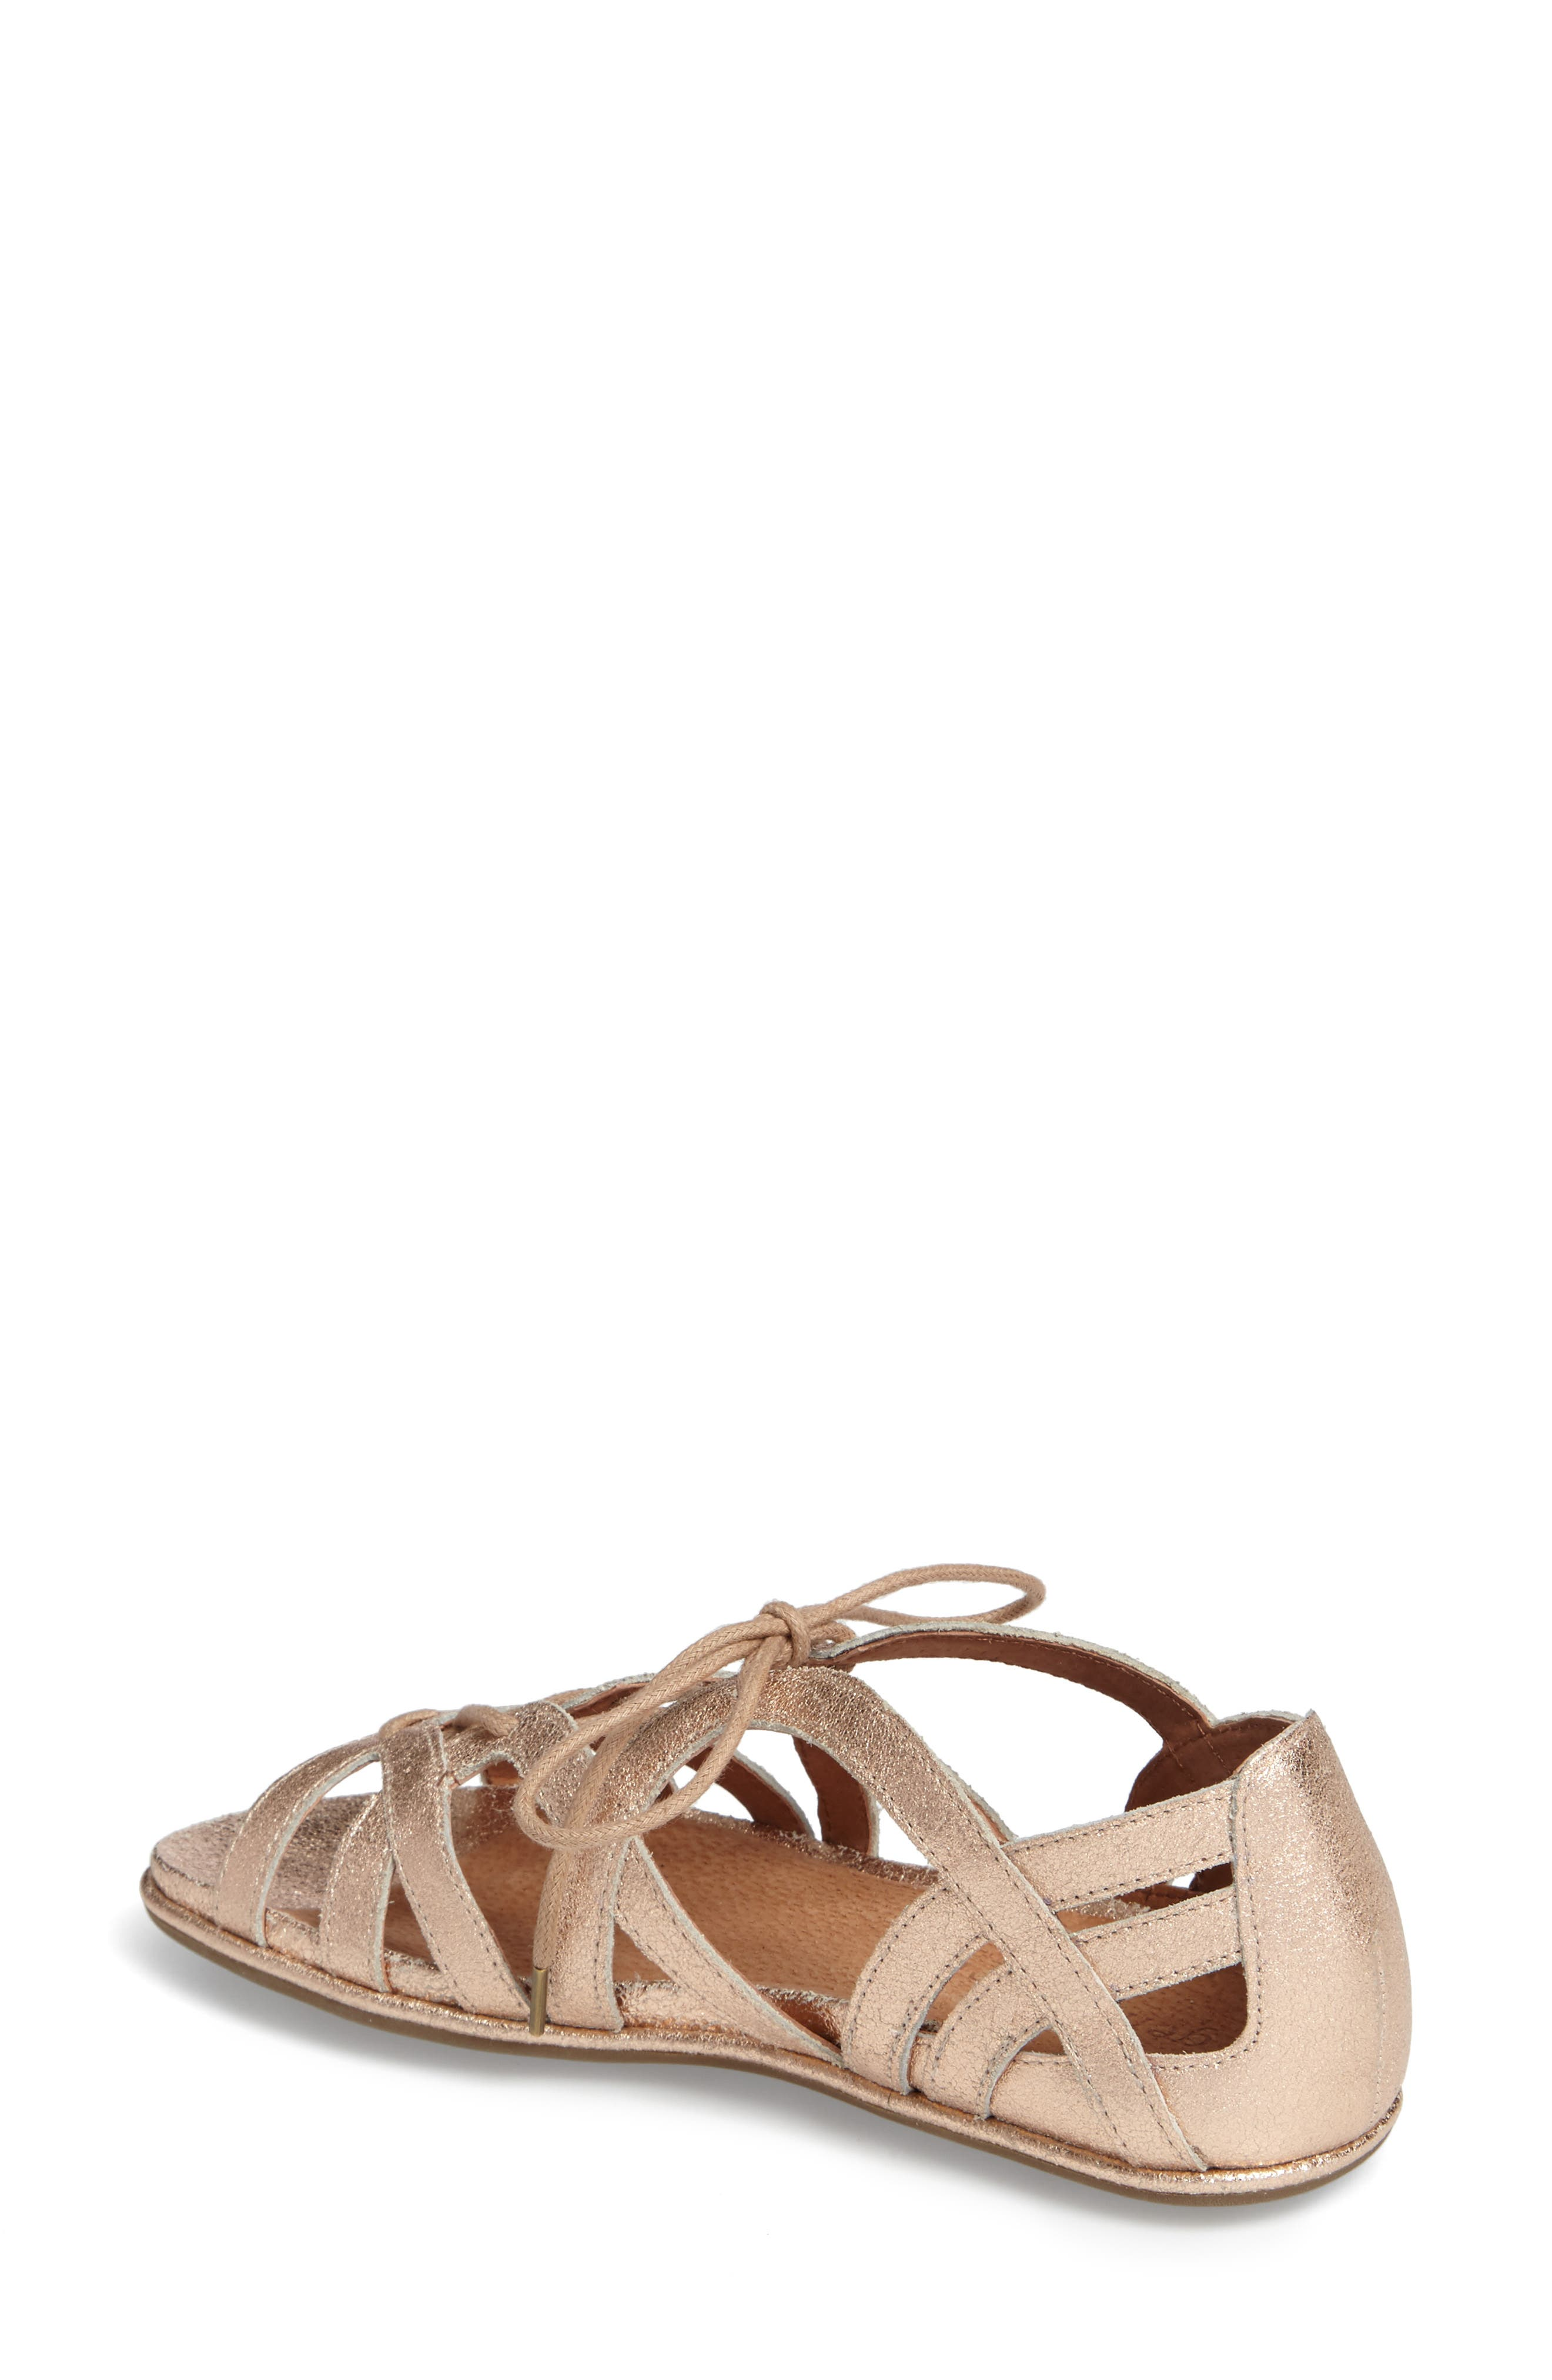 Orly Lace-Up Sandal,                             Alternate thumbnail 2, color,                             ROSE GOLD LEATHER